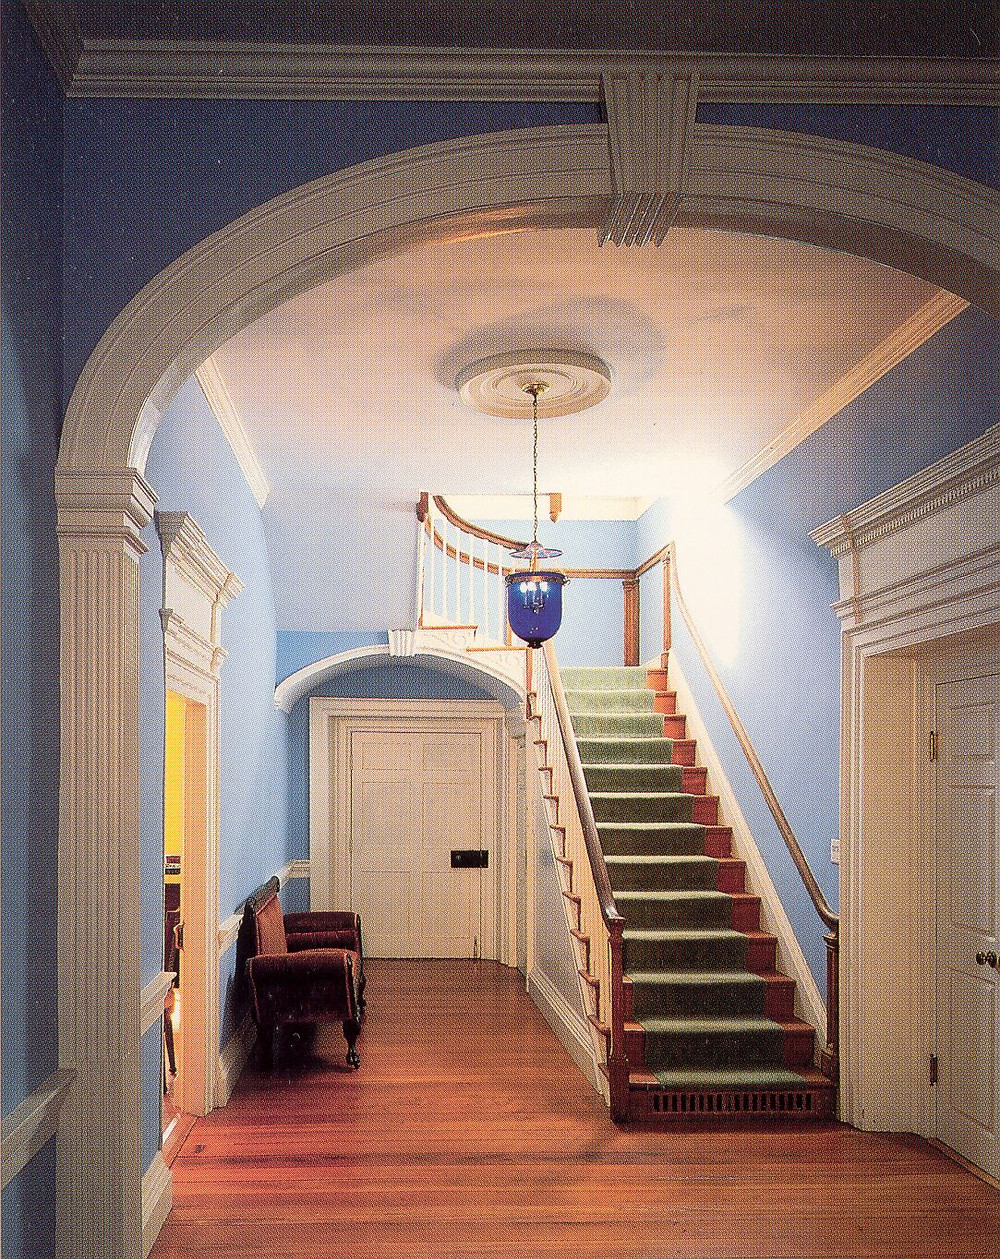 The Main Hallway of the Clover Forest Plantation Manor Home, within the brick central core of the building, completed as an addition in 1811